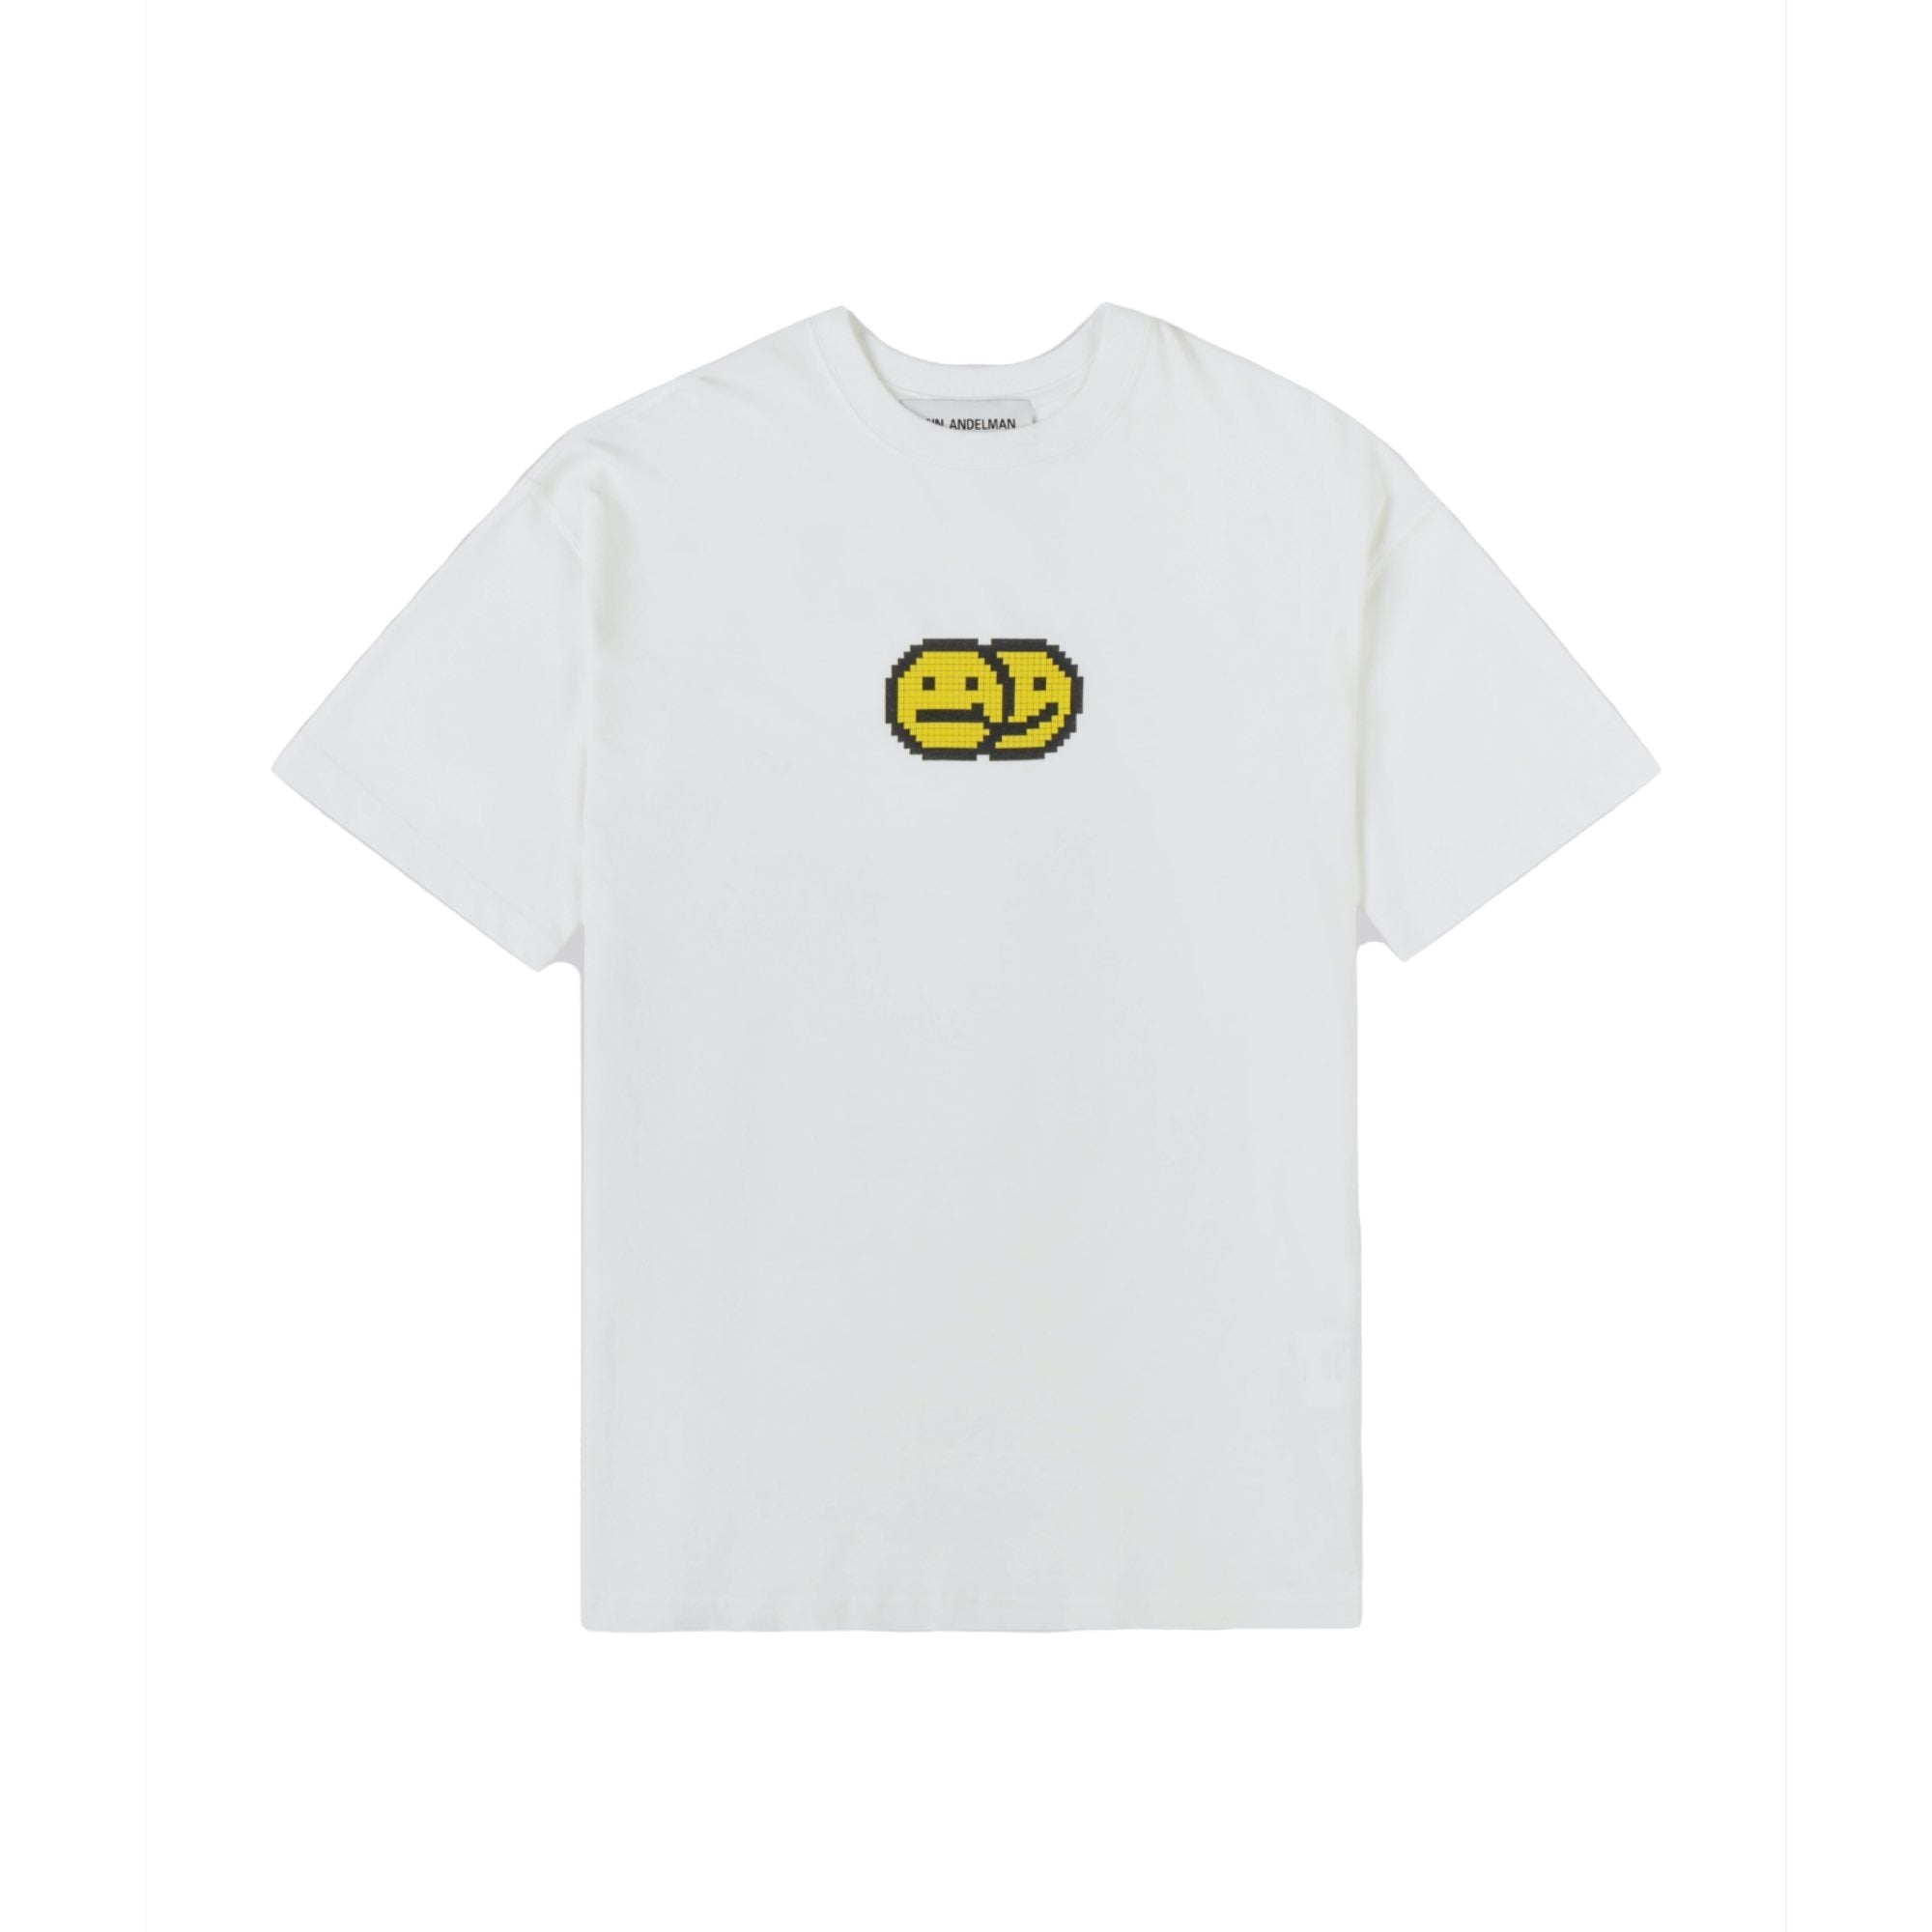 ANN ANDELMAN White Smiling Face Tee | MADA IN CHINA